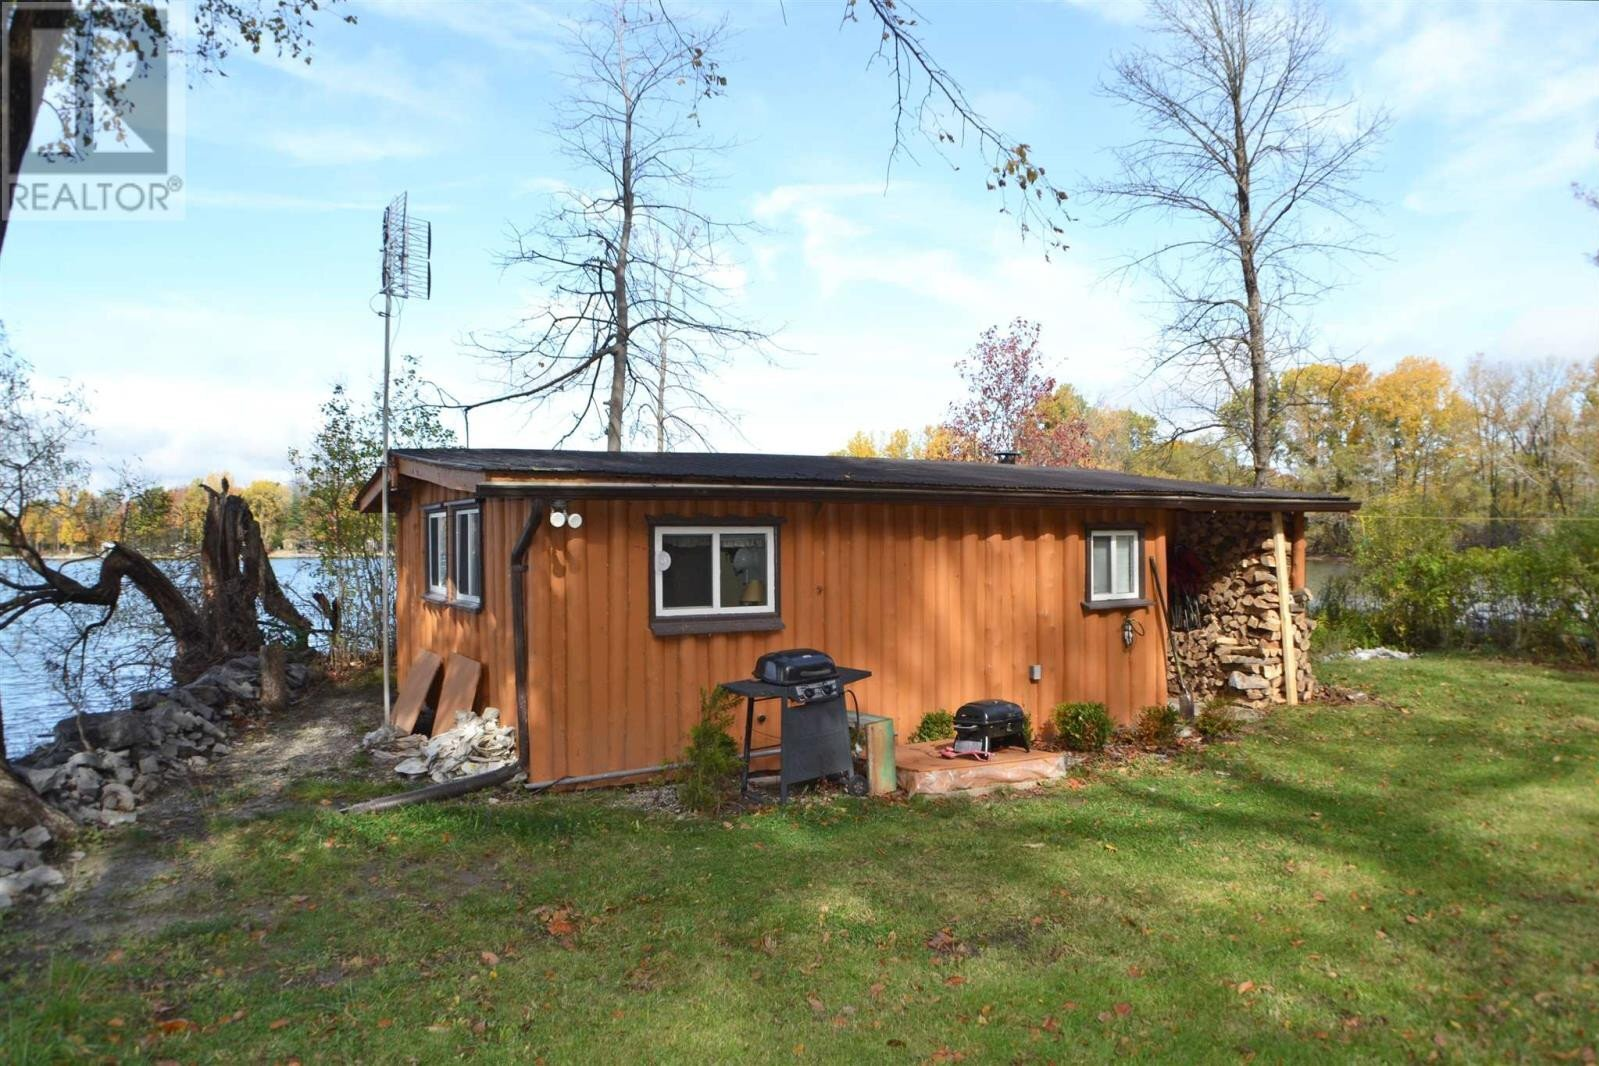 House for sale at 83 S Shore Perch Cove Ln Napanee Ontario - MLS: K20006172